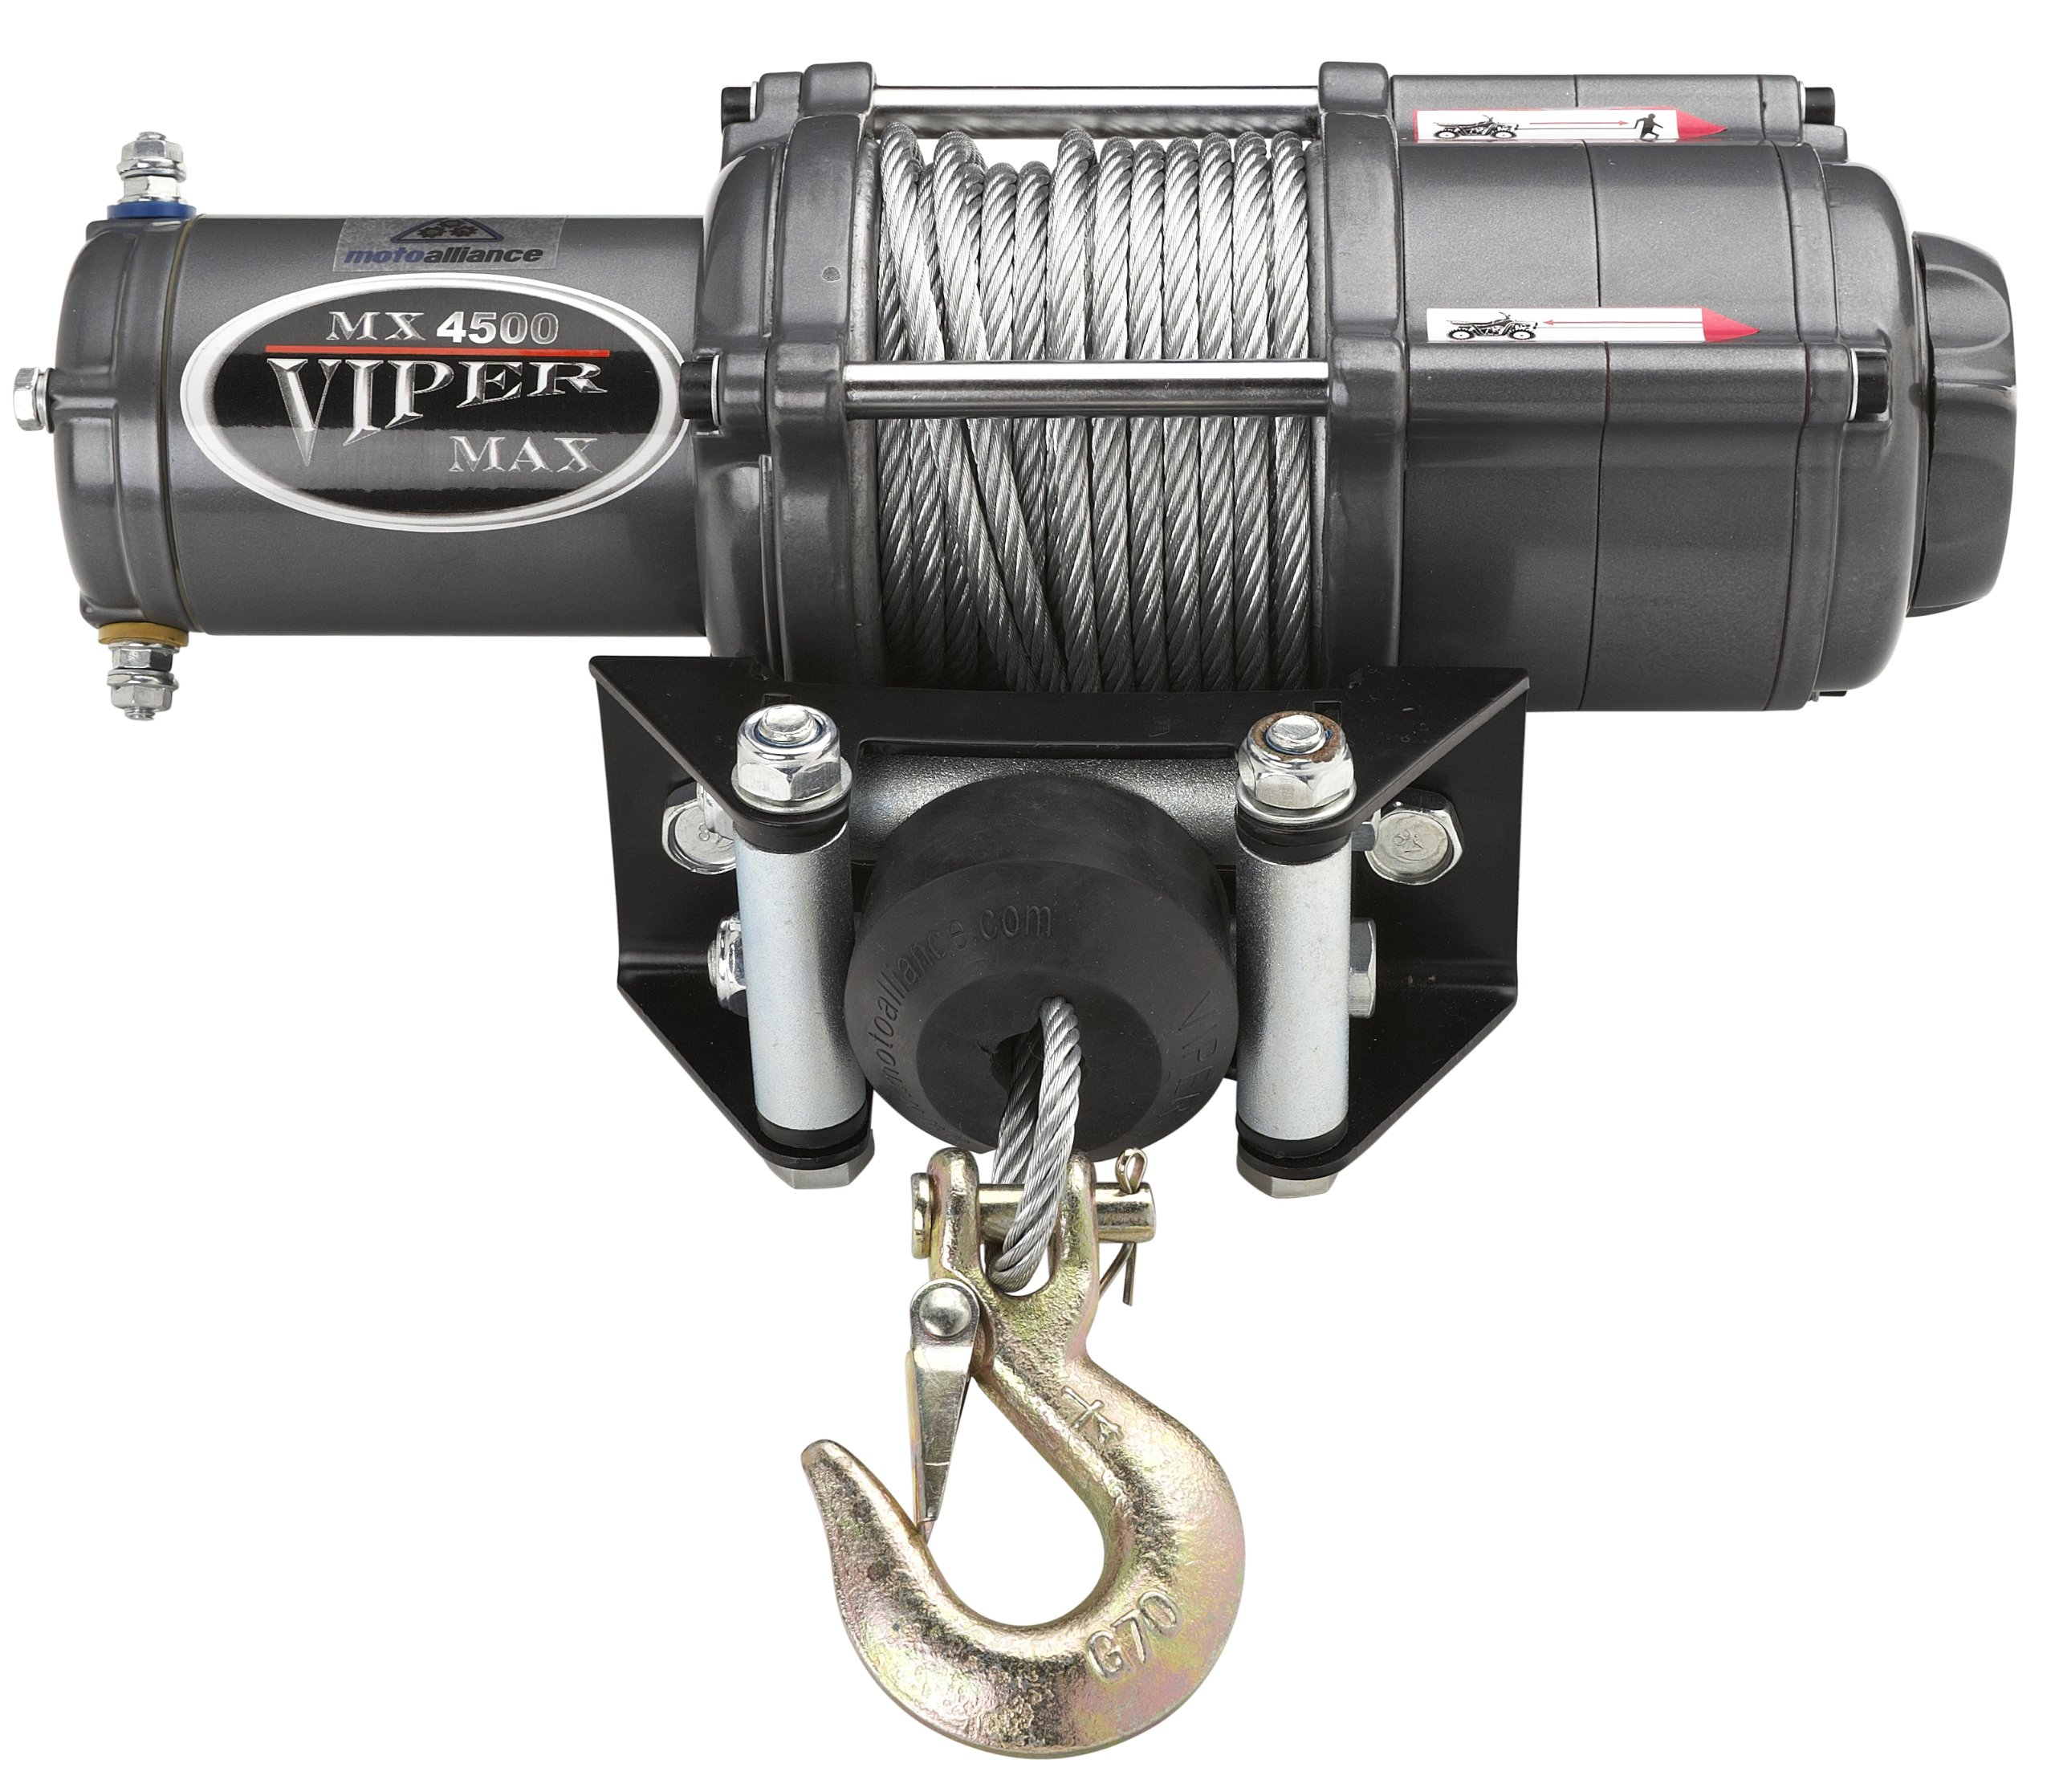 VIPER Max 4500lb ATV/UTV Winch Kit with 50 feet Steel Cable